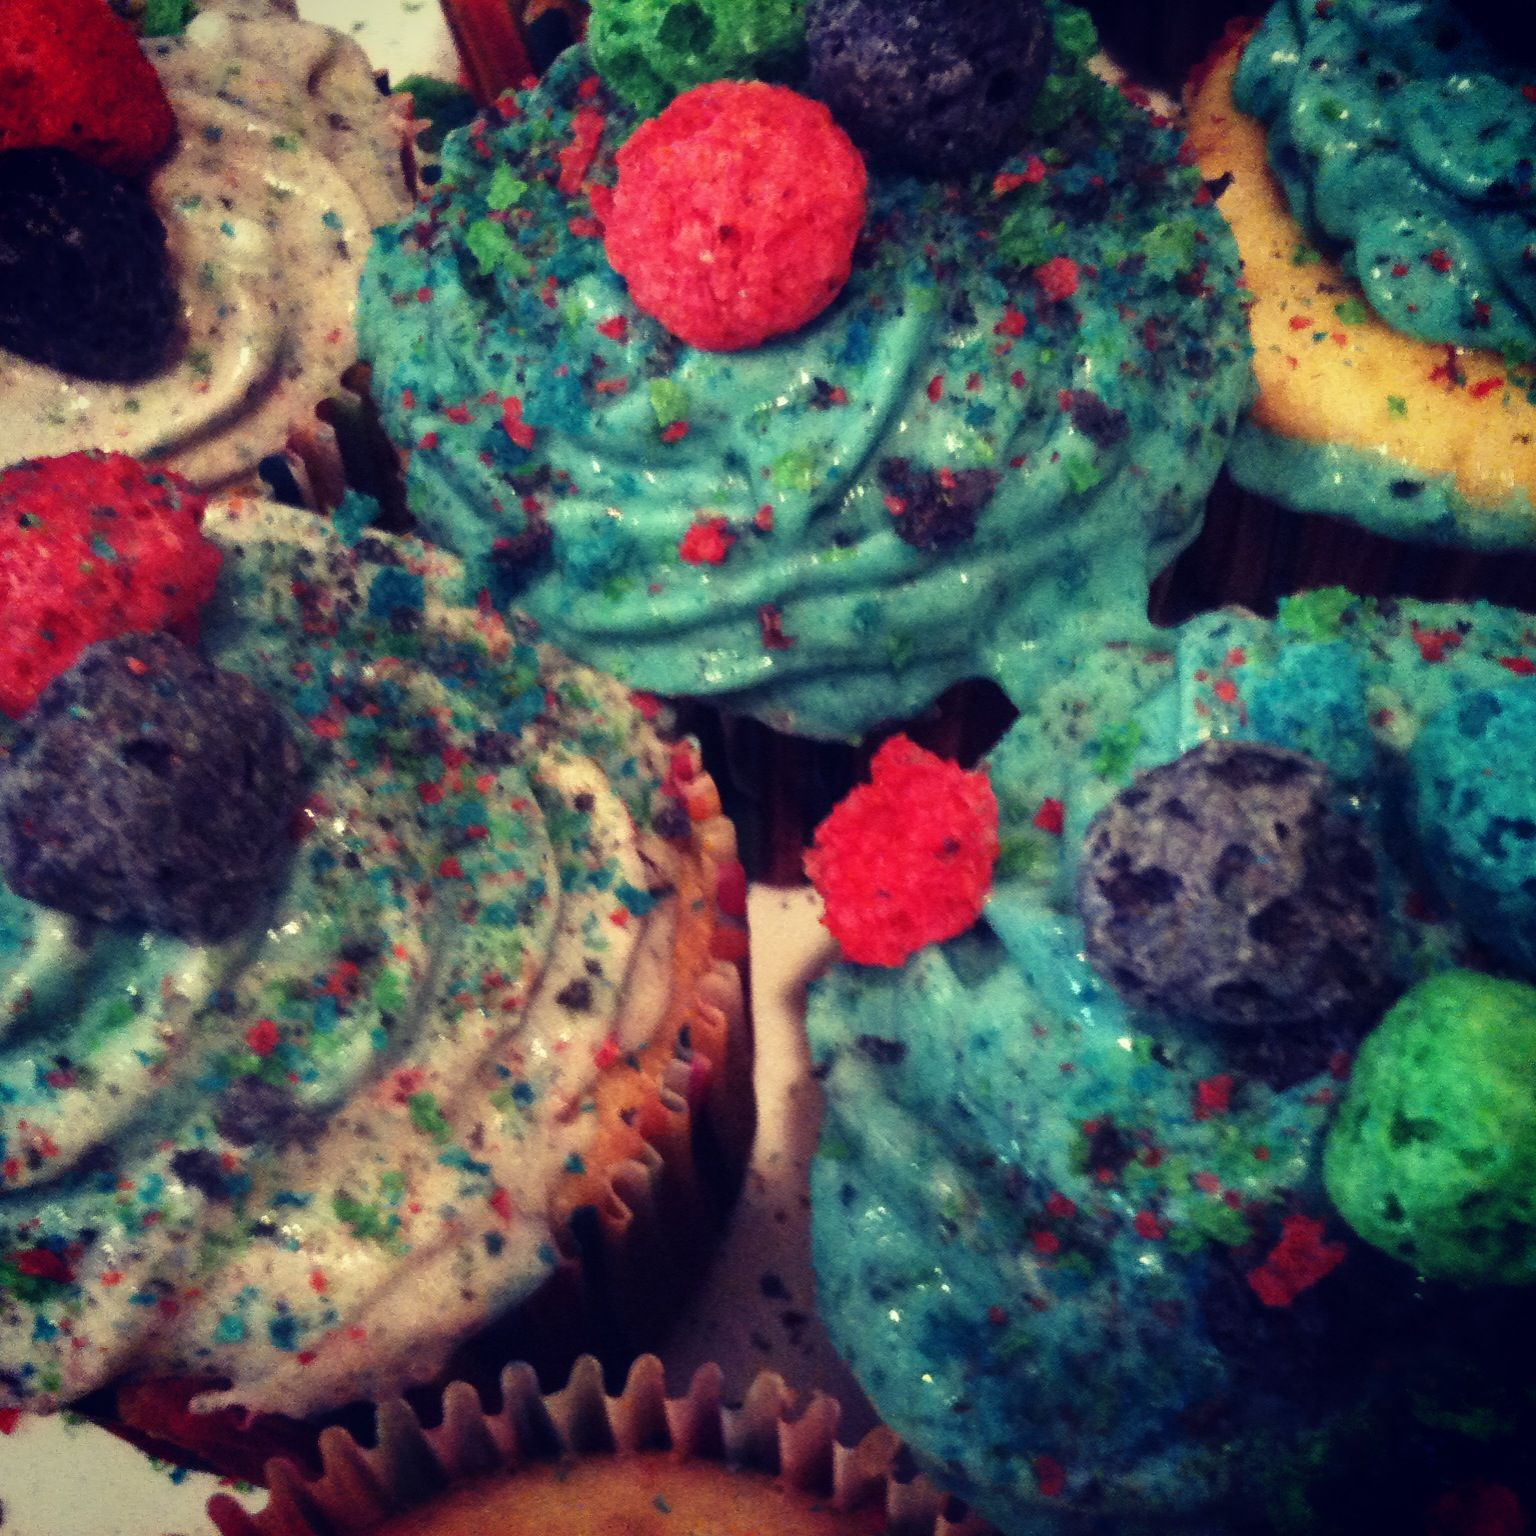 Cap N Crunch Cupcakes With Oops All Berries Cream Cheese Buttercream Yummy Sweets Crunch Berries My Favorite Food Work the mixture with a pastry cutter or your hands until it resembles coarse meal. cap n crunch cupcakes with oops all